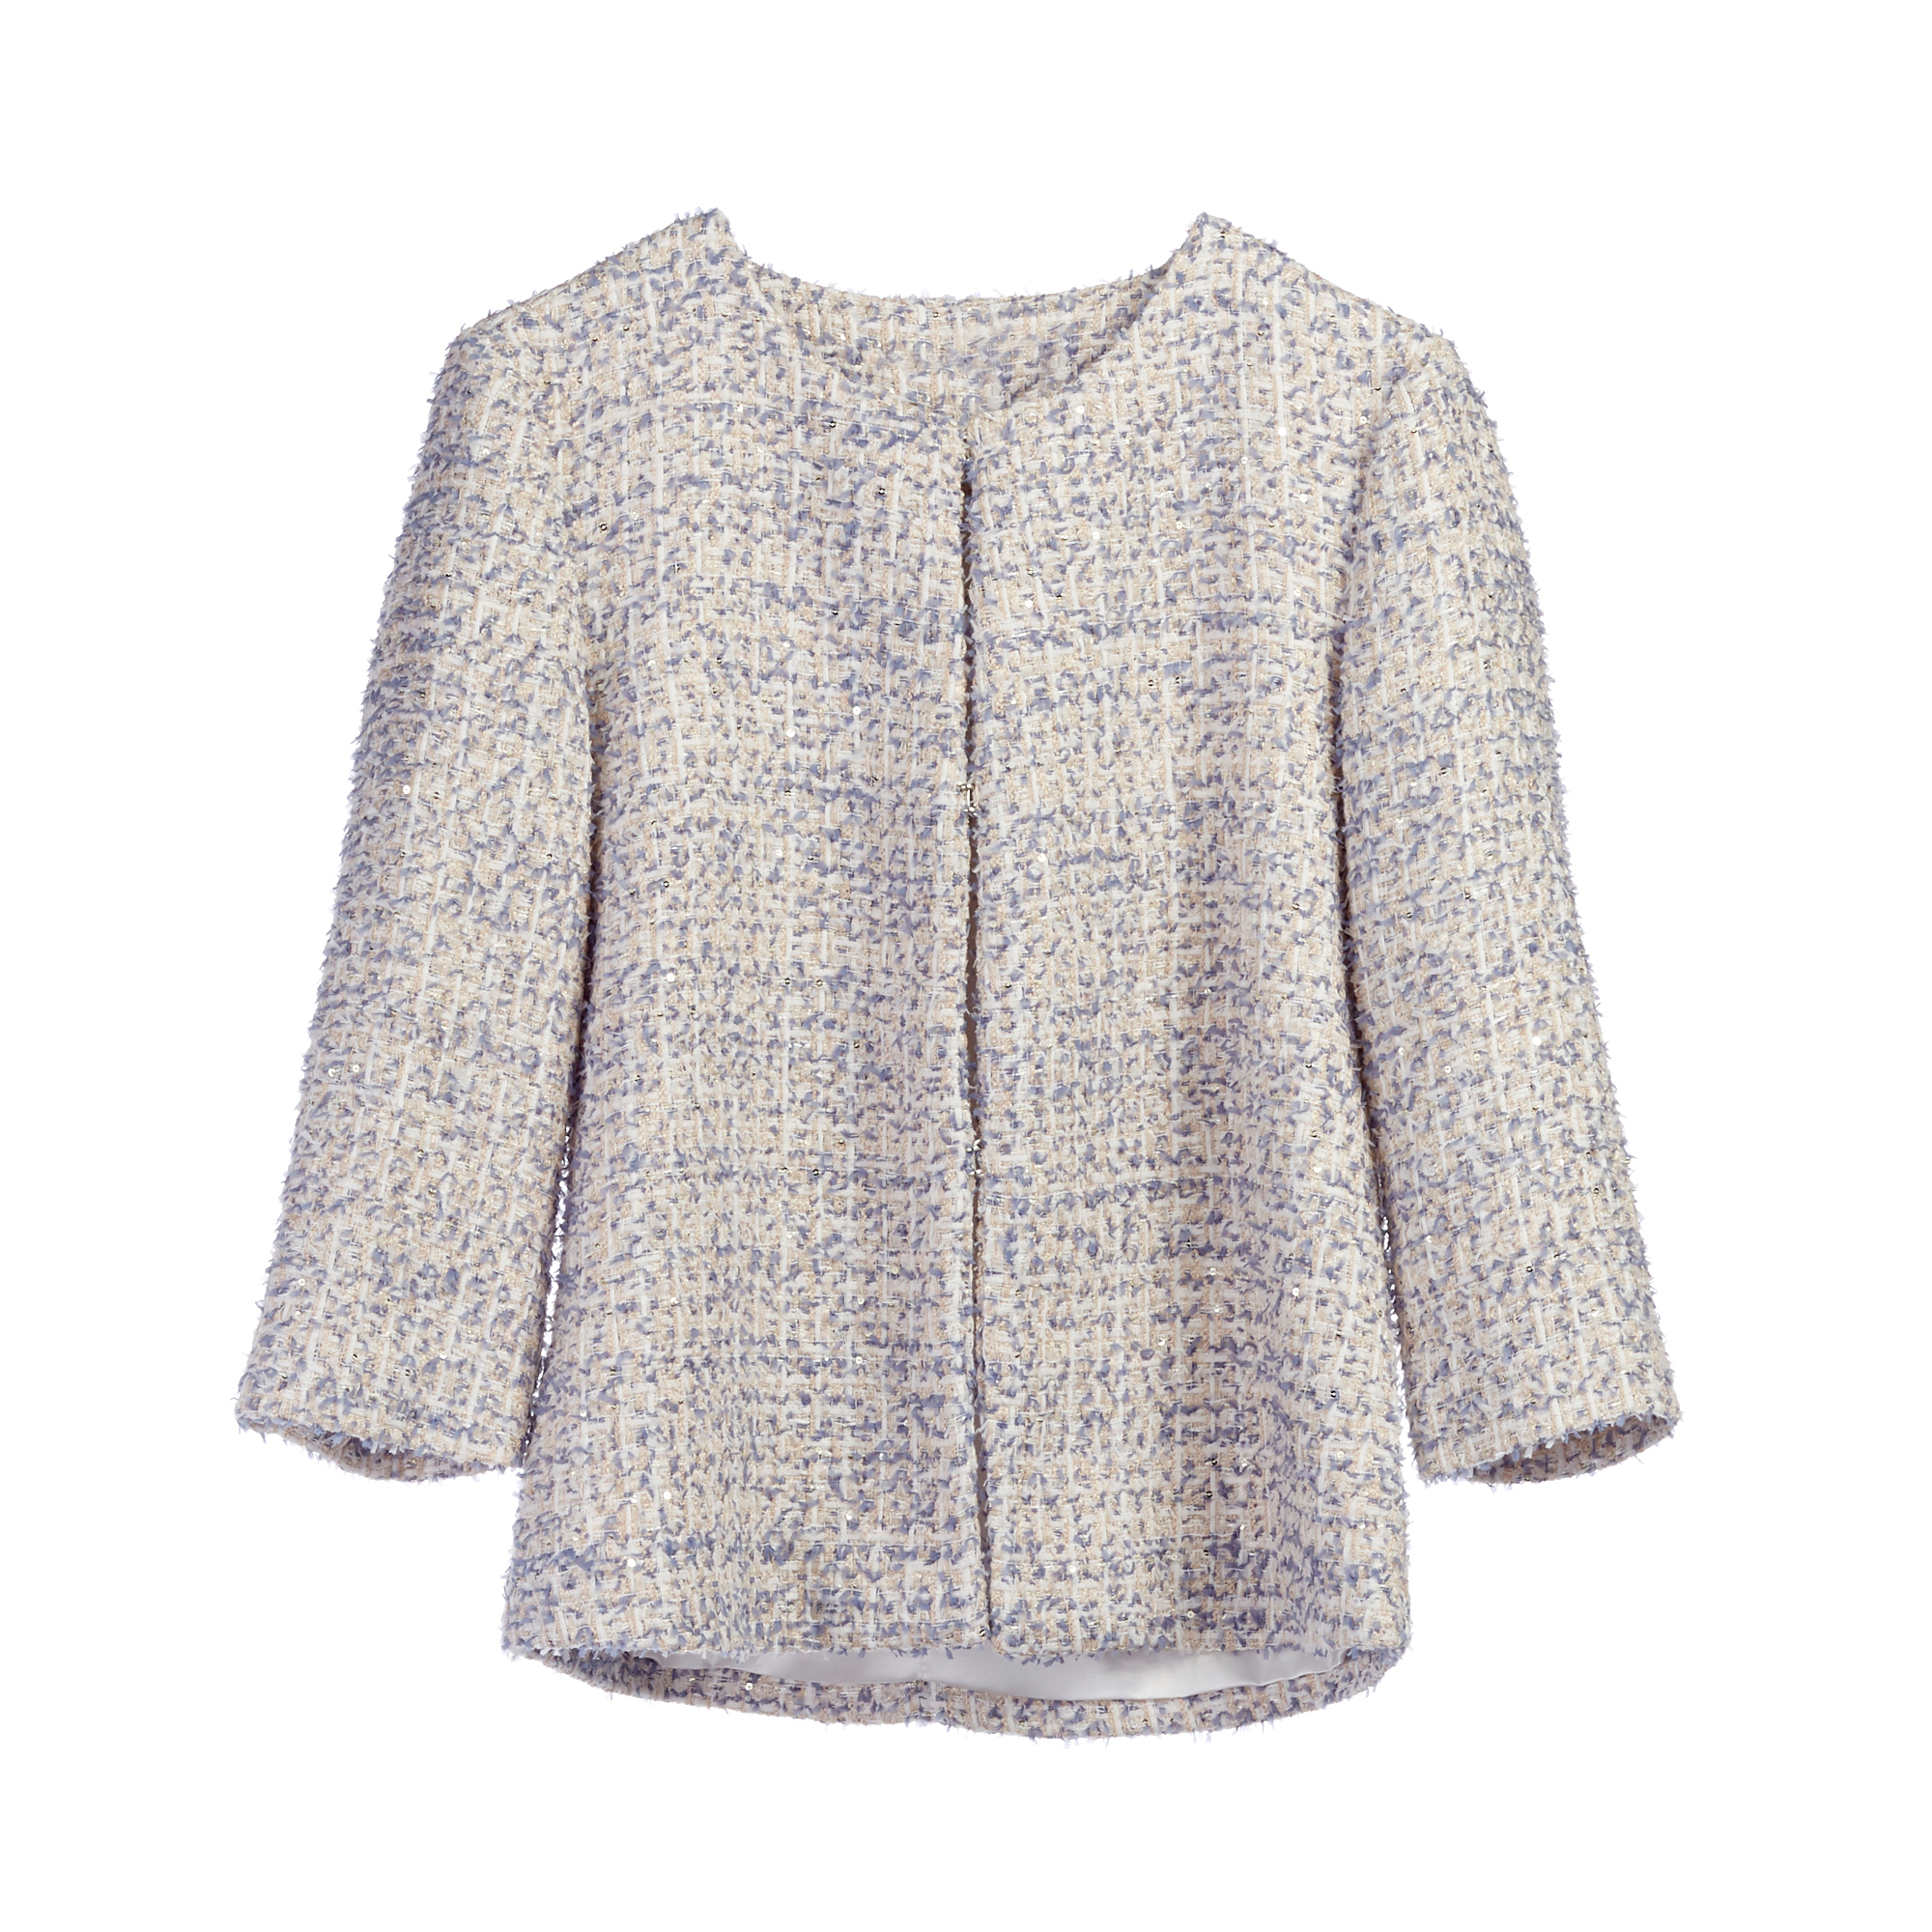 Cara Tweed Jacket